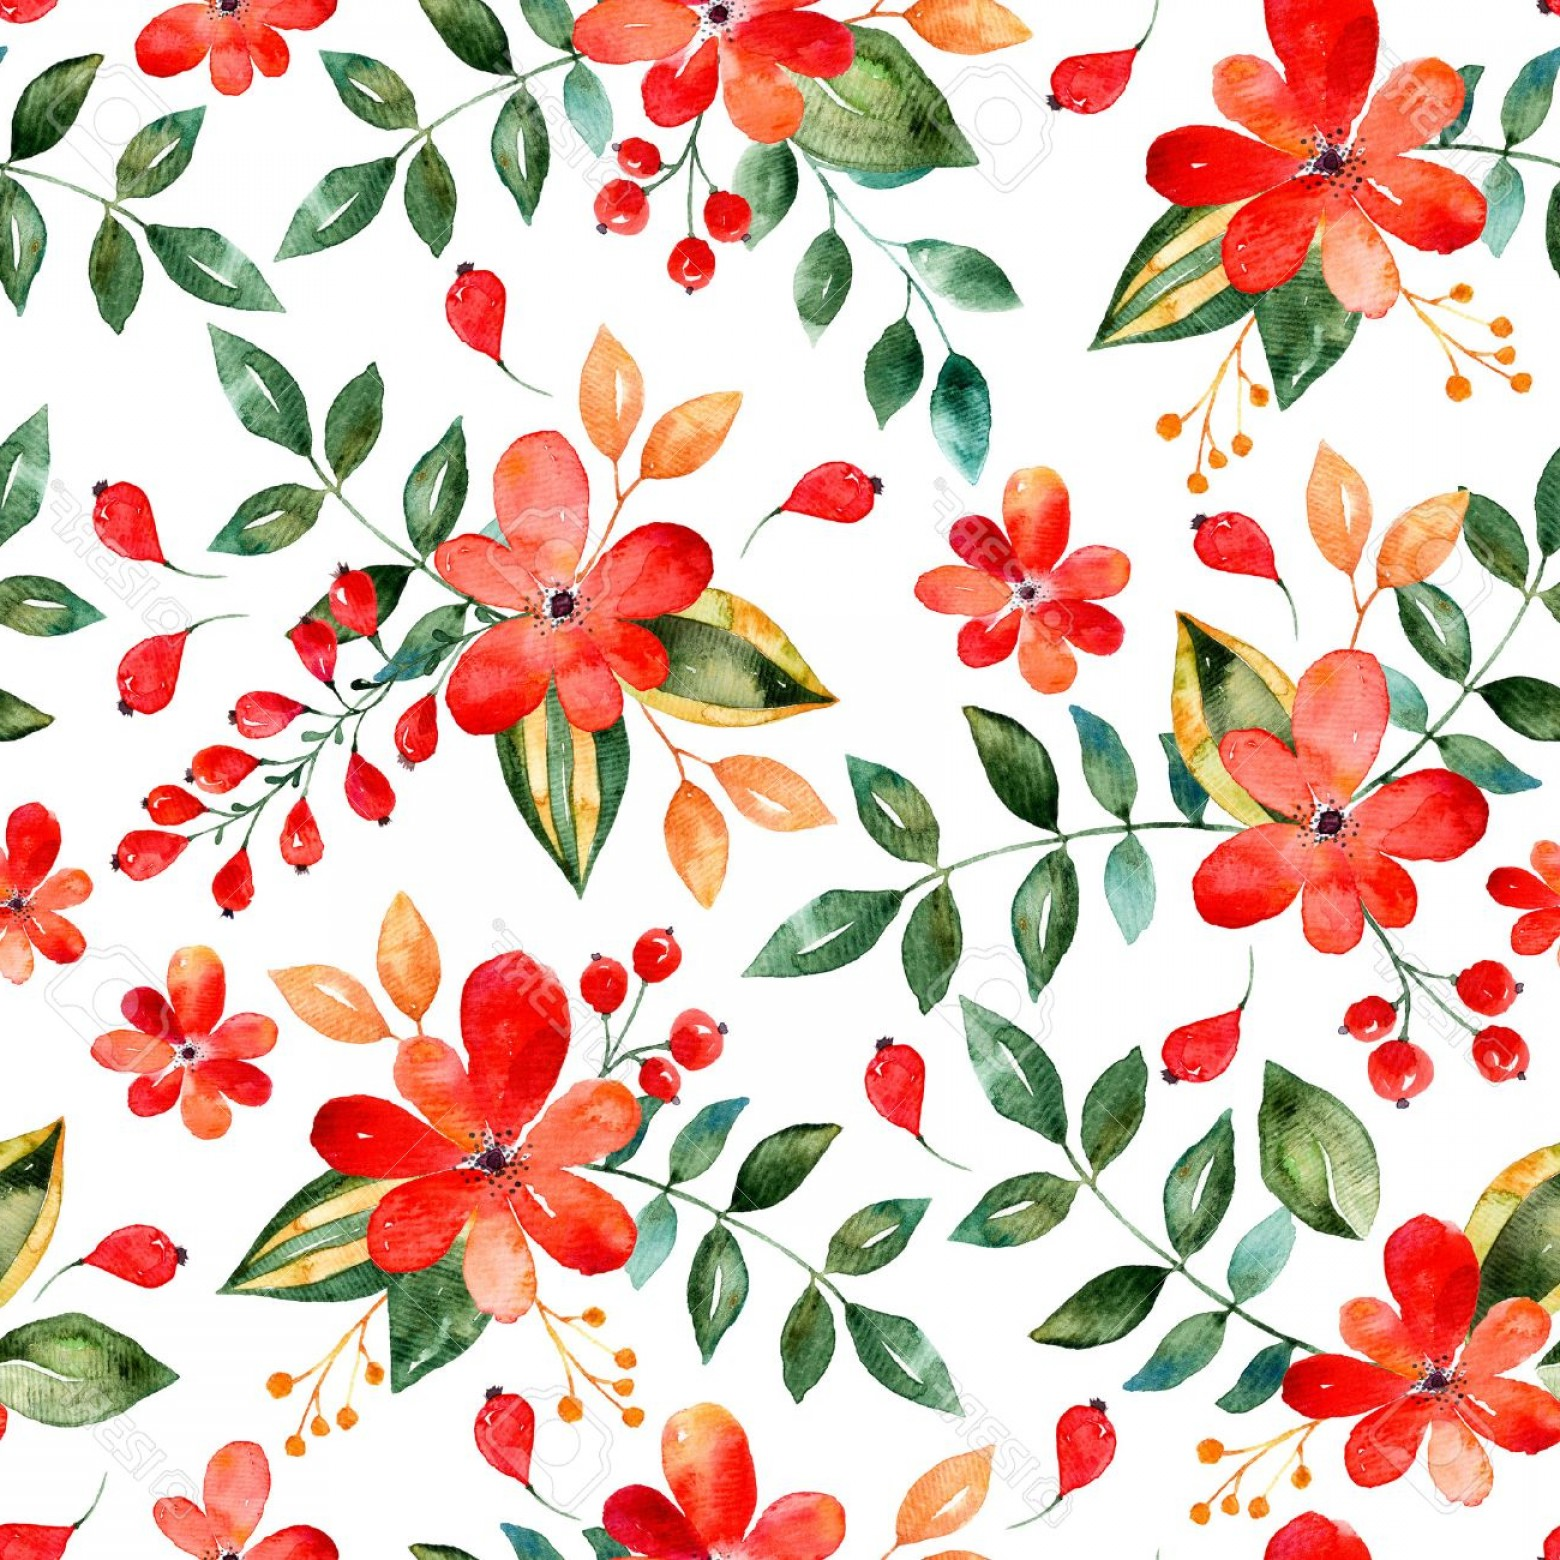 Floral Vector Illustration: Photostock Illustration Watercolor Floral Seamless Pattern With Red Flowers And Leafs Colorful Floral Vector Illustration Su